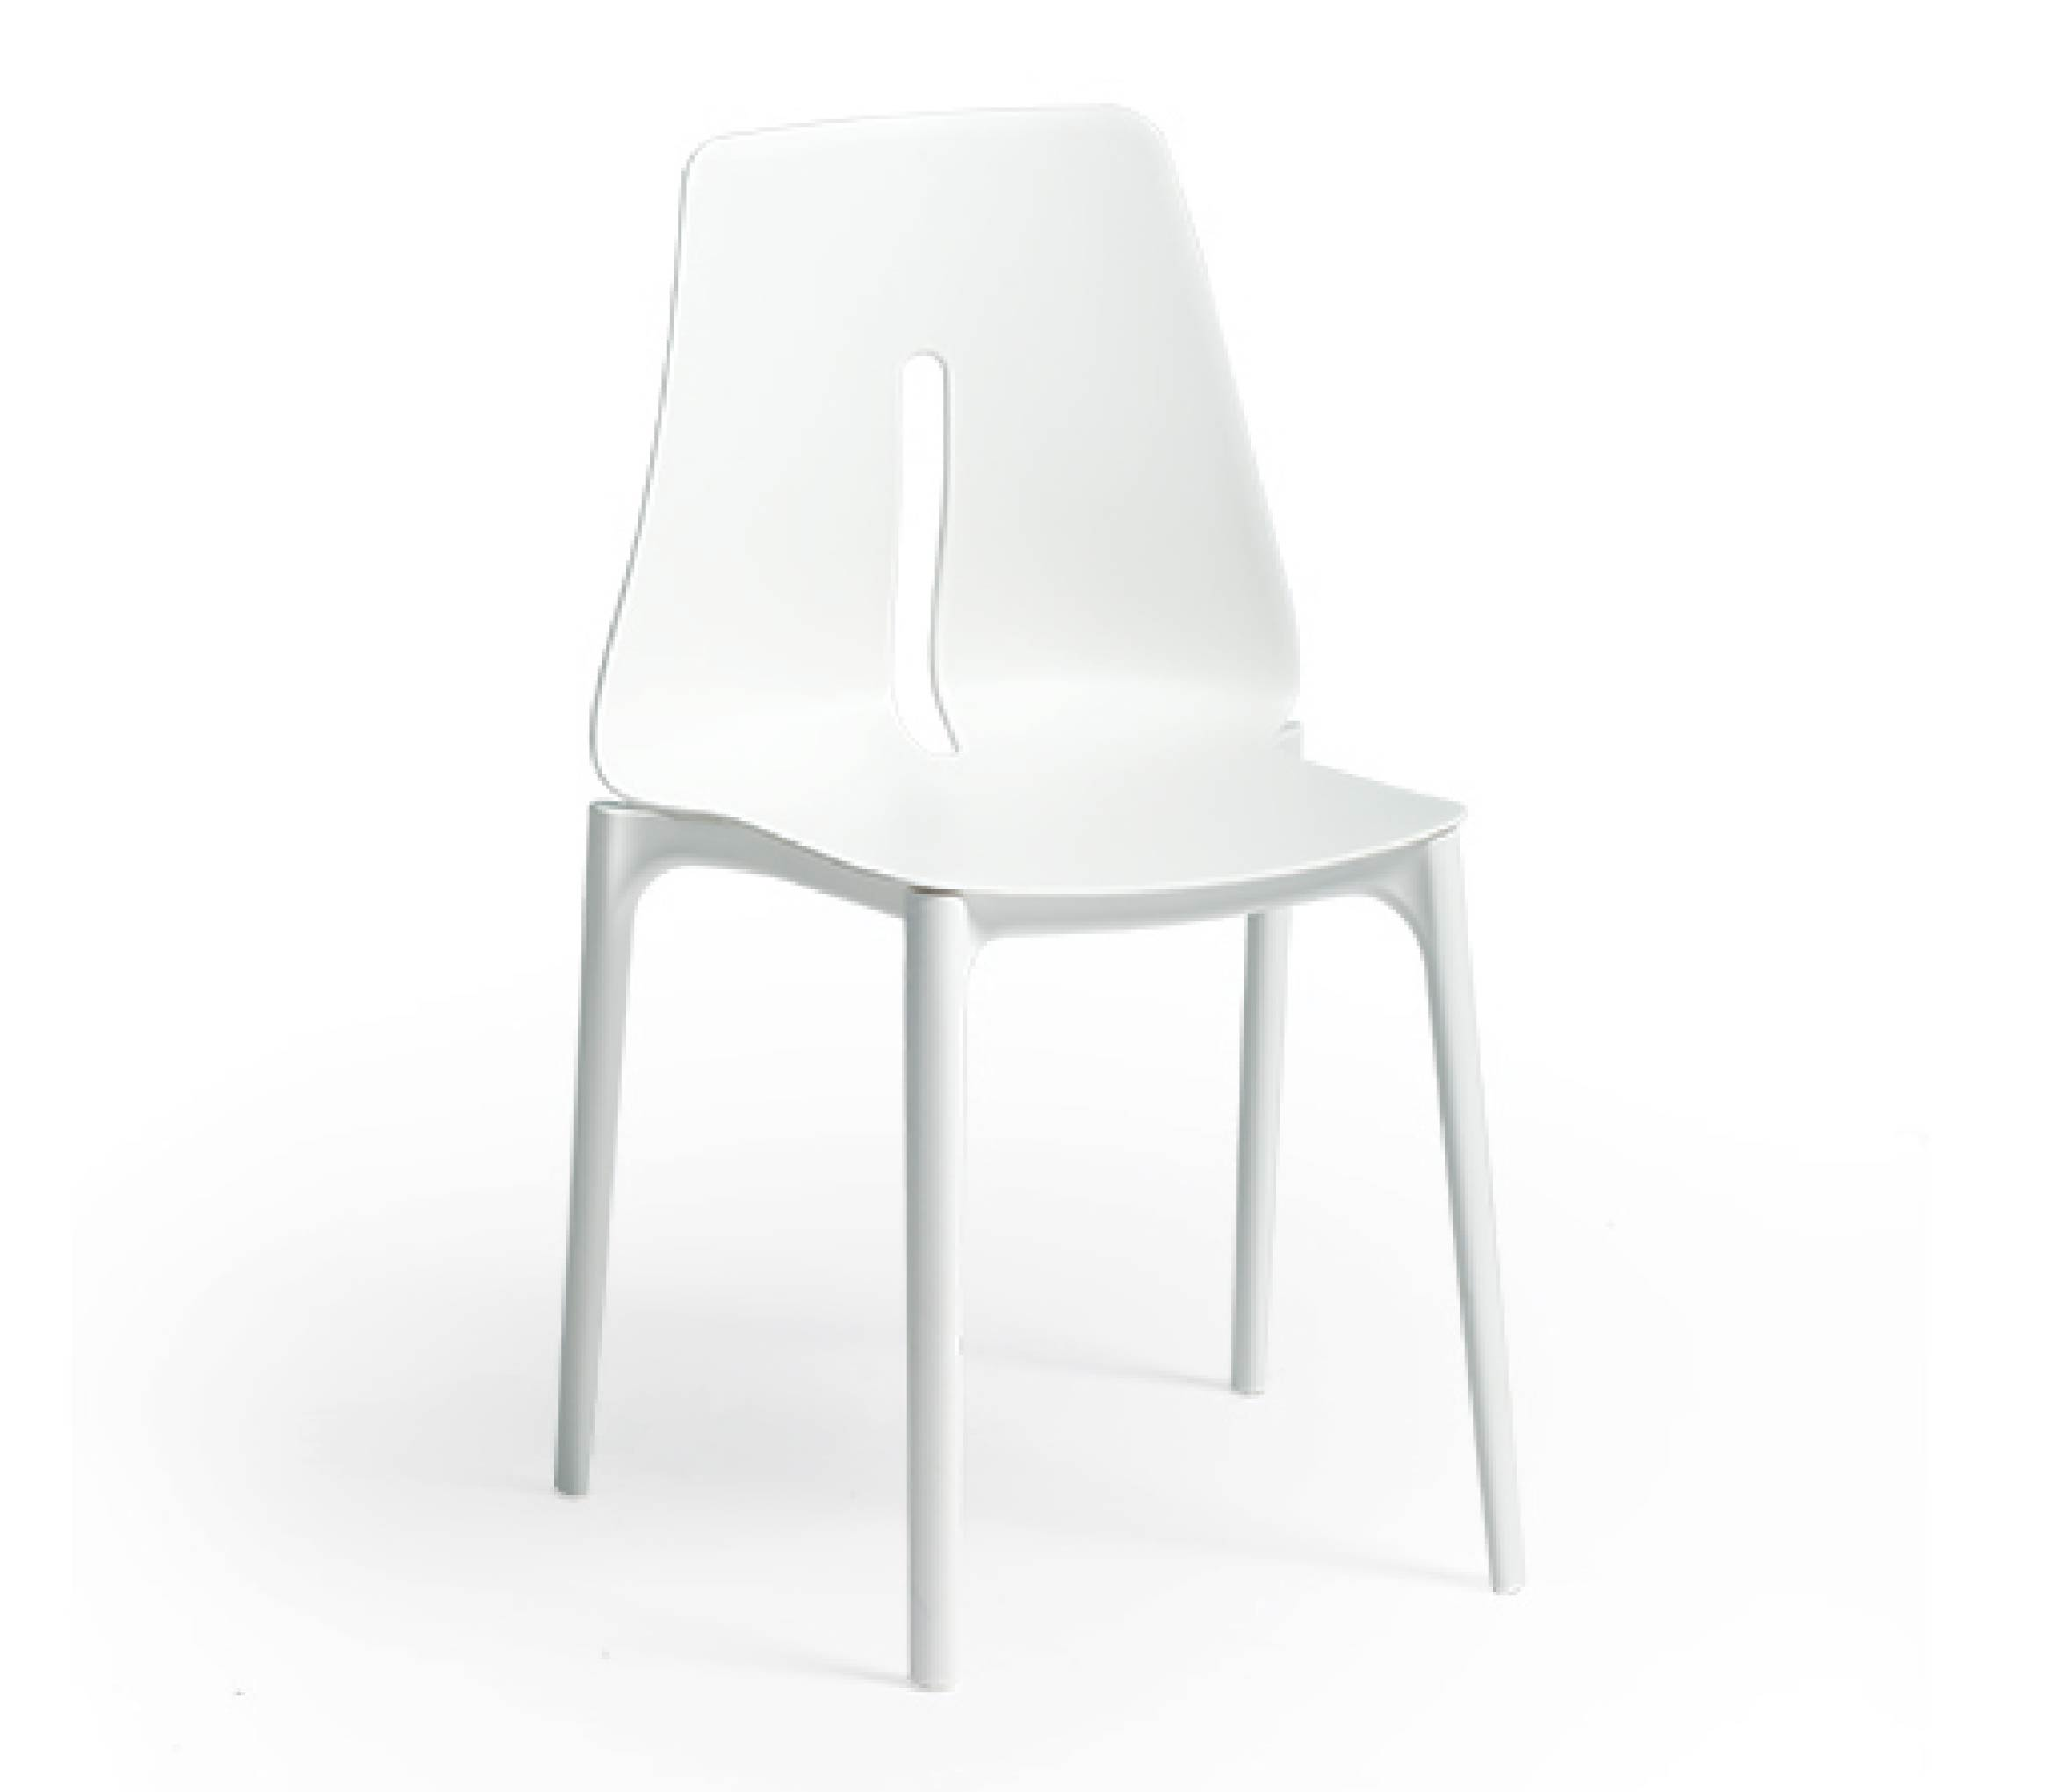 1_TENSAI_FURNITURE_OBLONG__plastic_chair_white_color_in_white_background_100_005